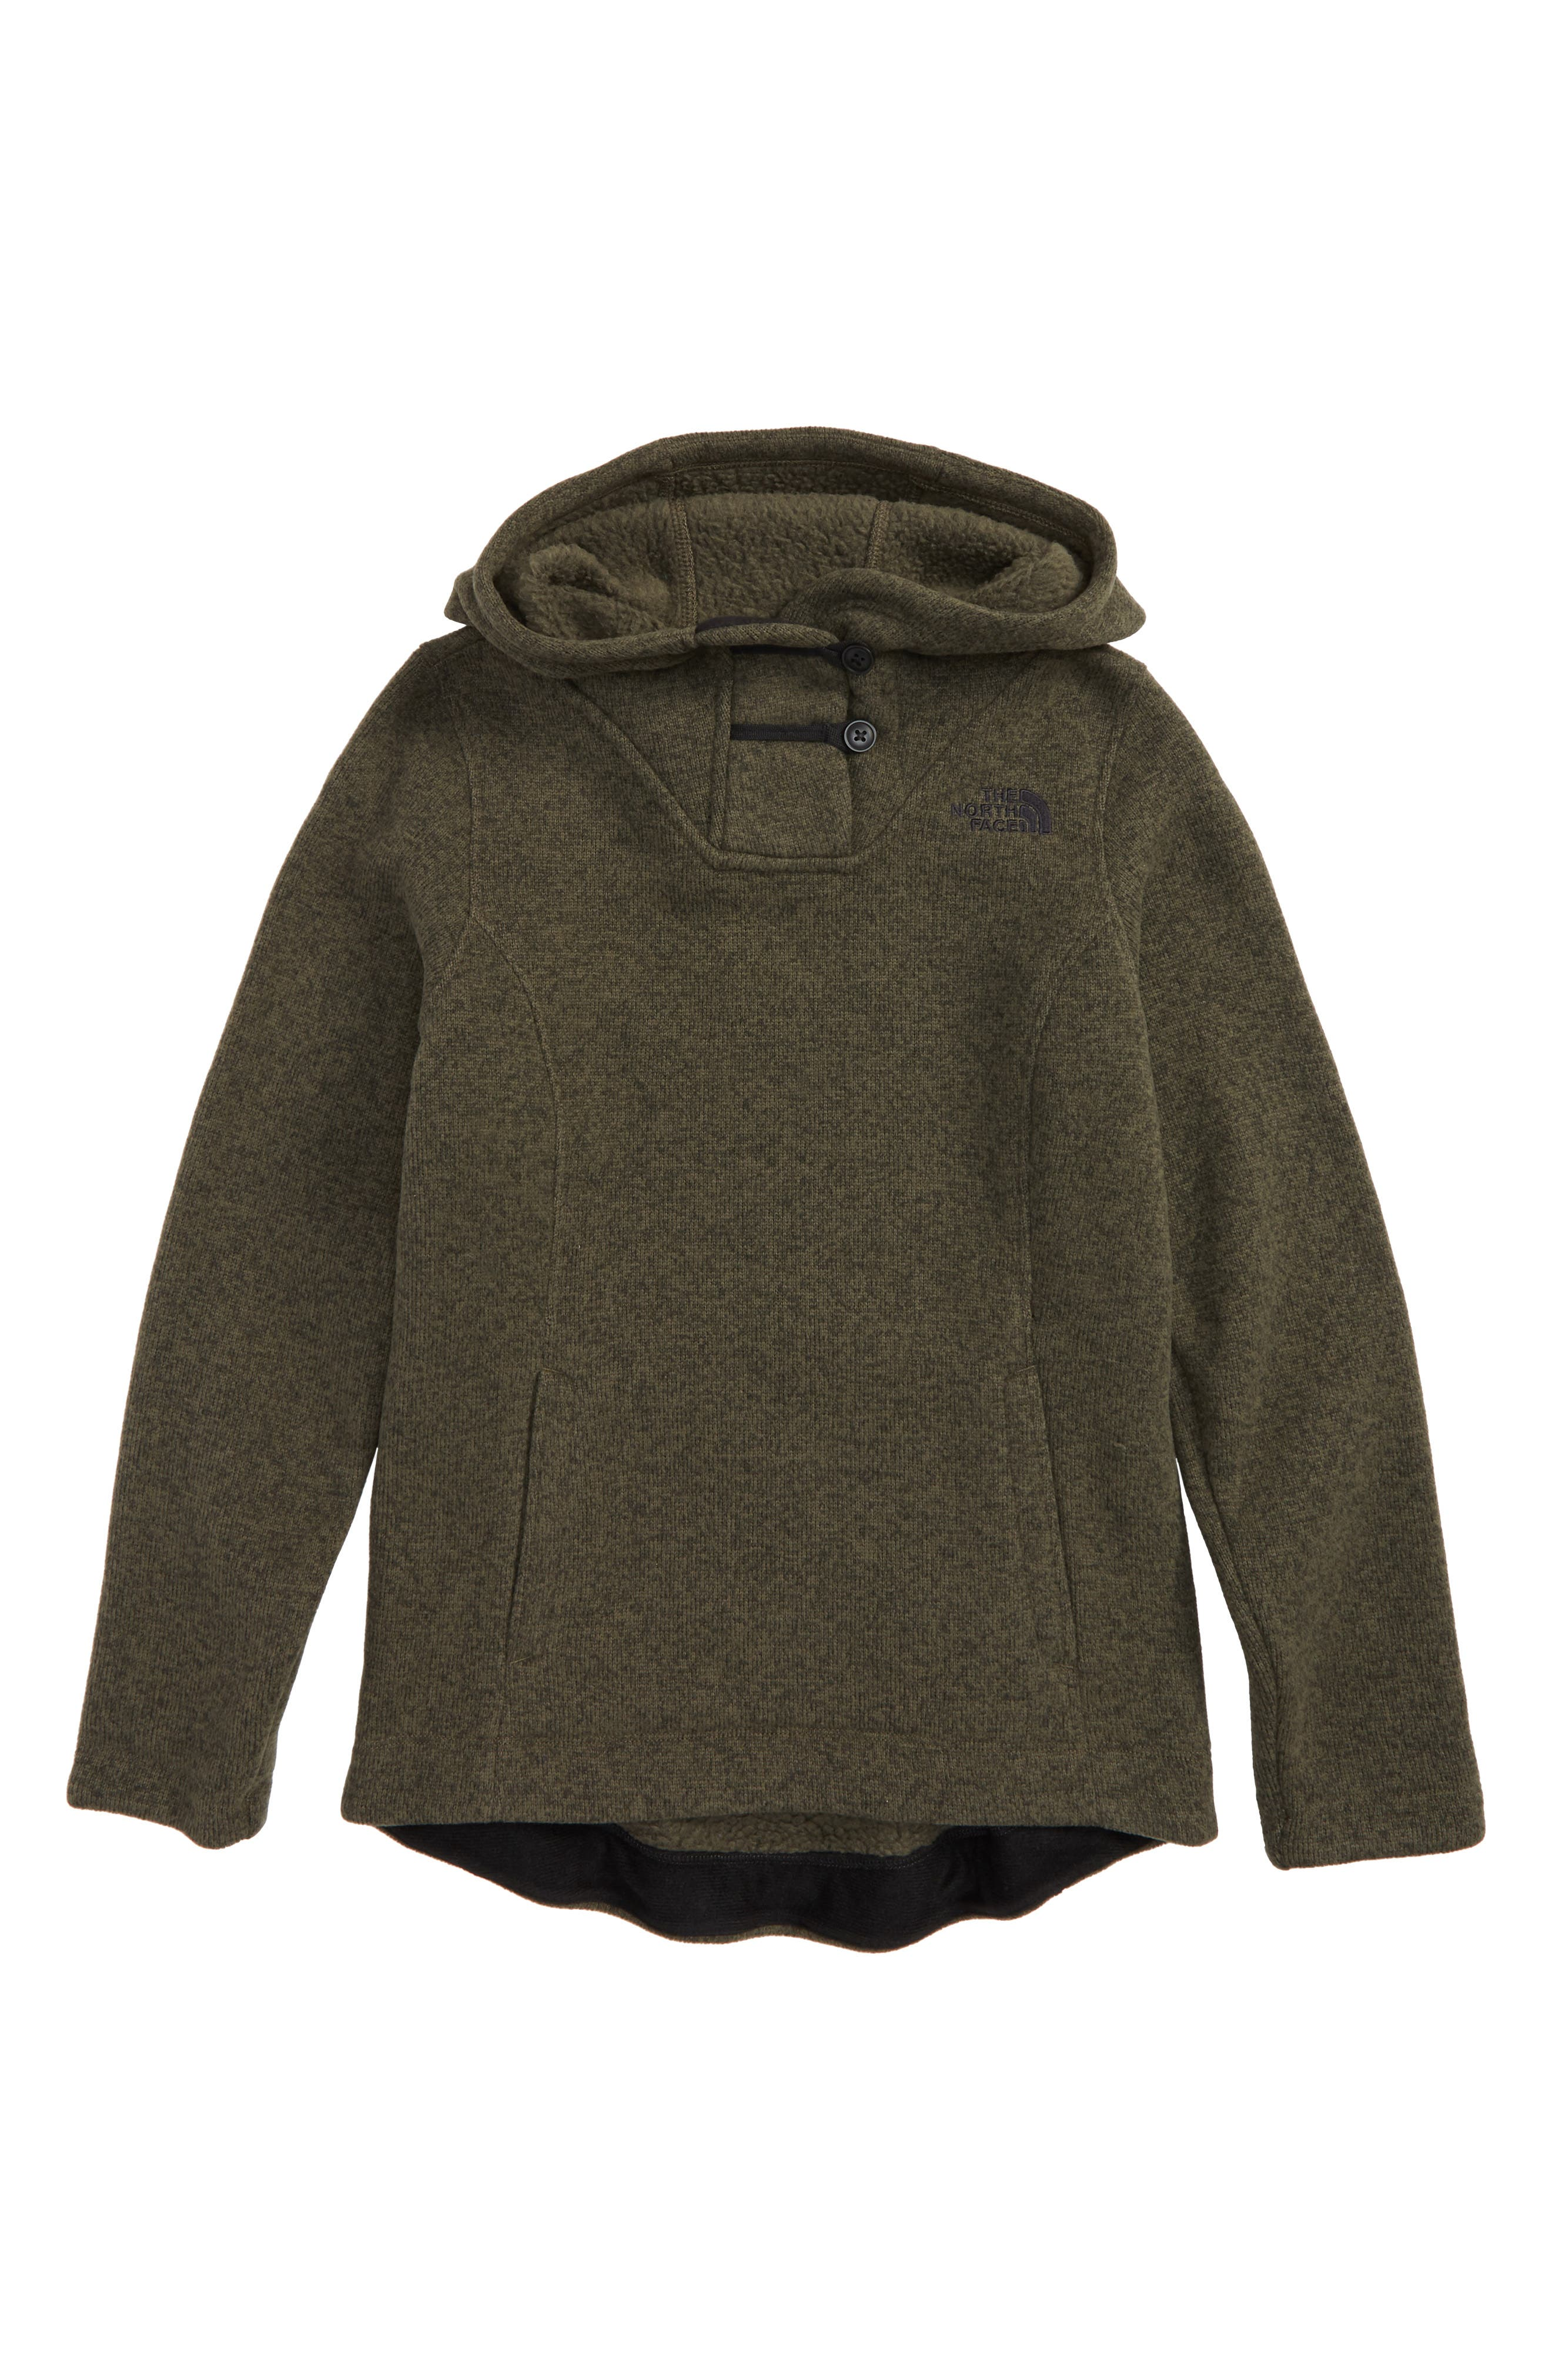 Crescent Sunset Hoodie,                             Main thumbnail 1, color,                             301